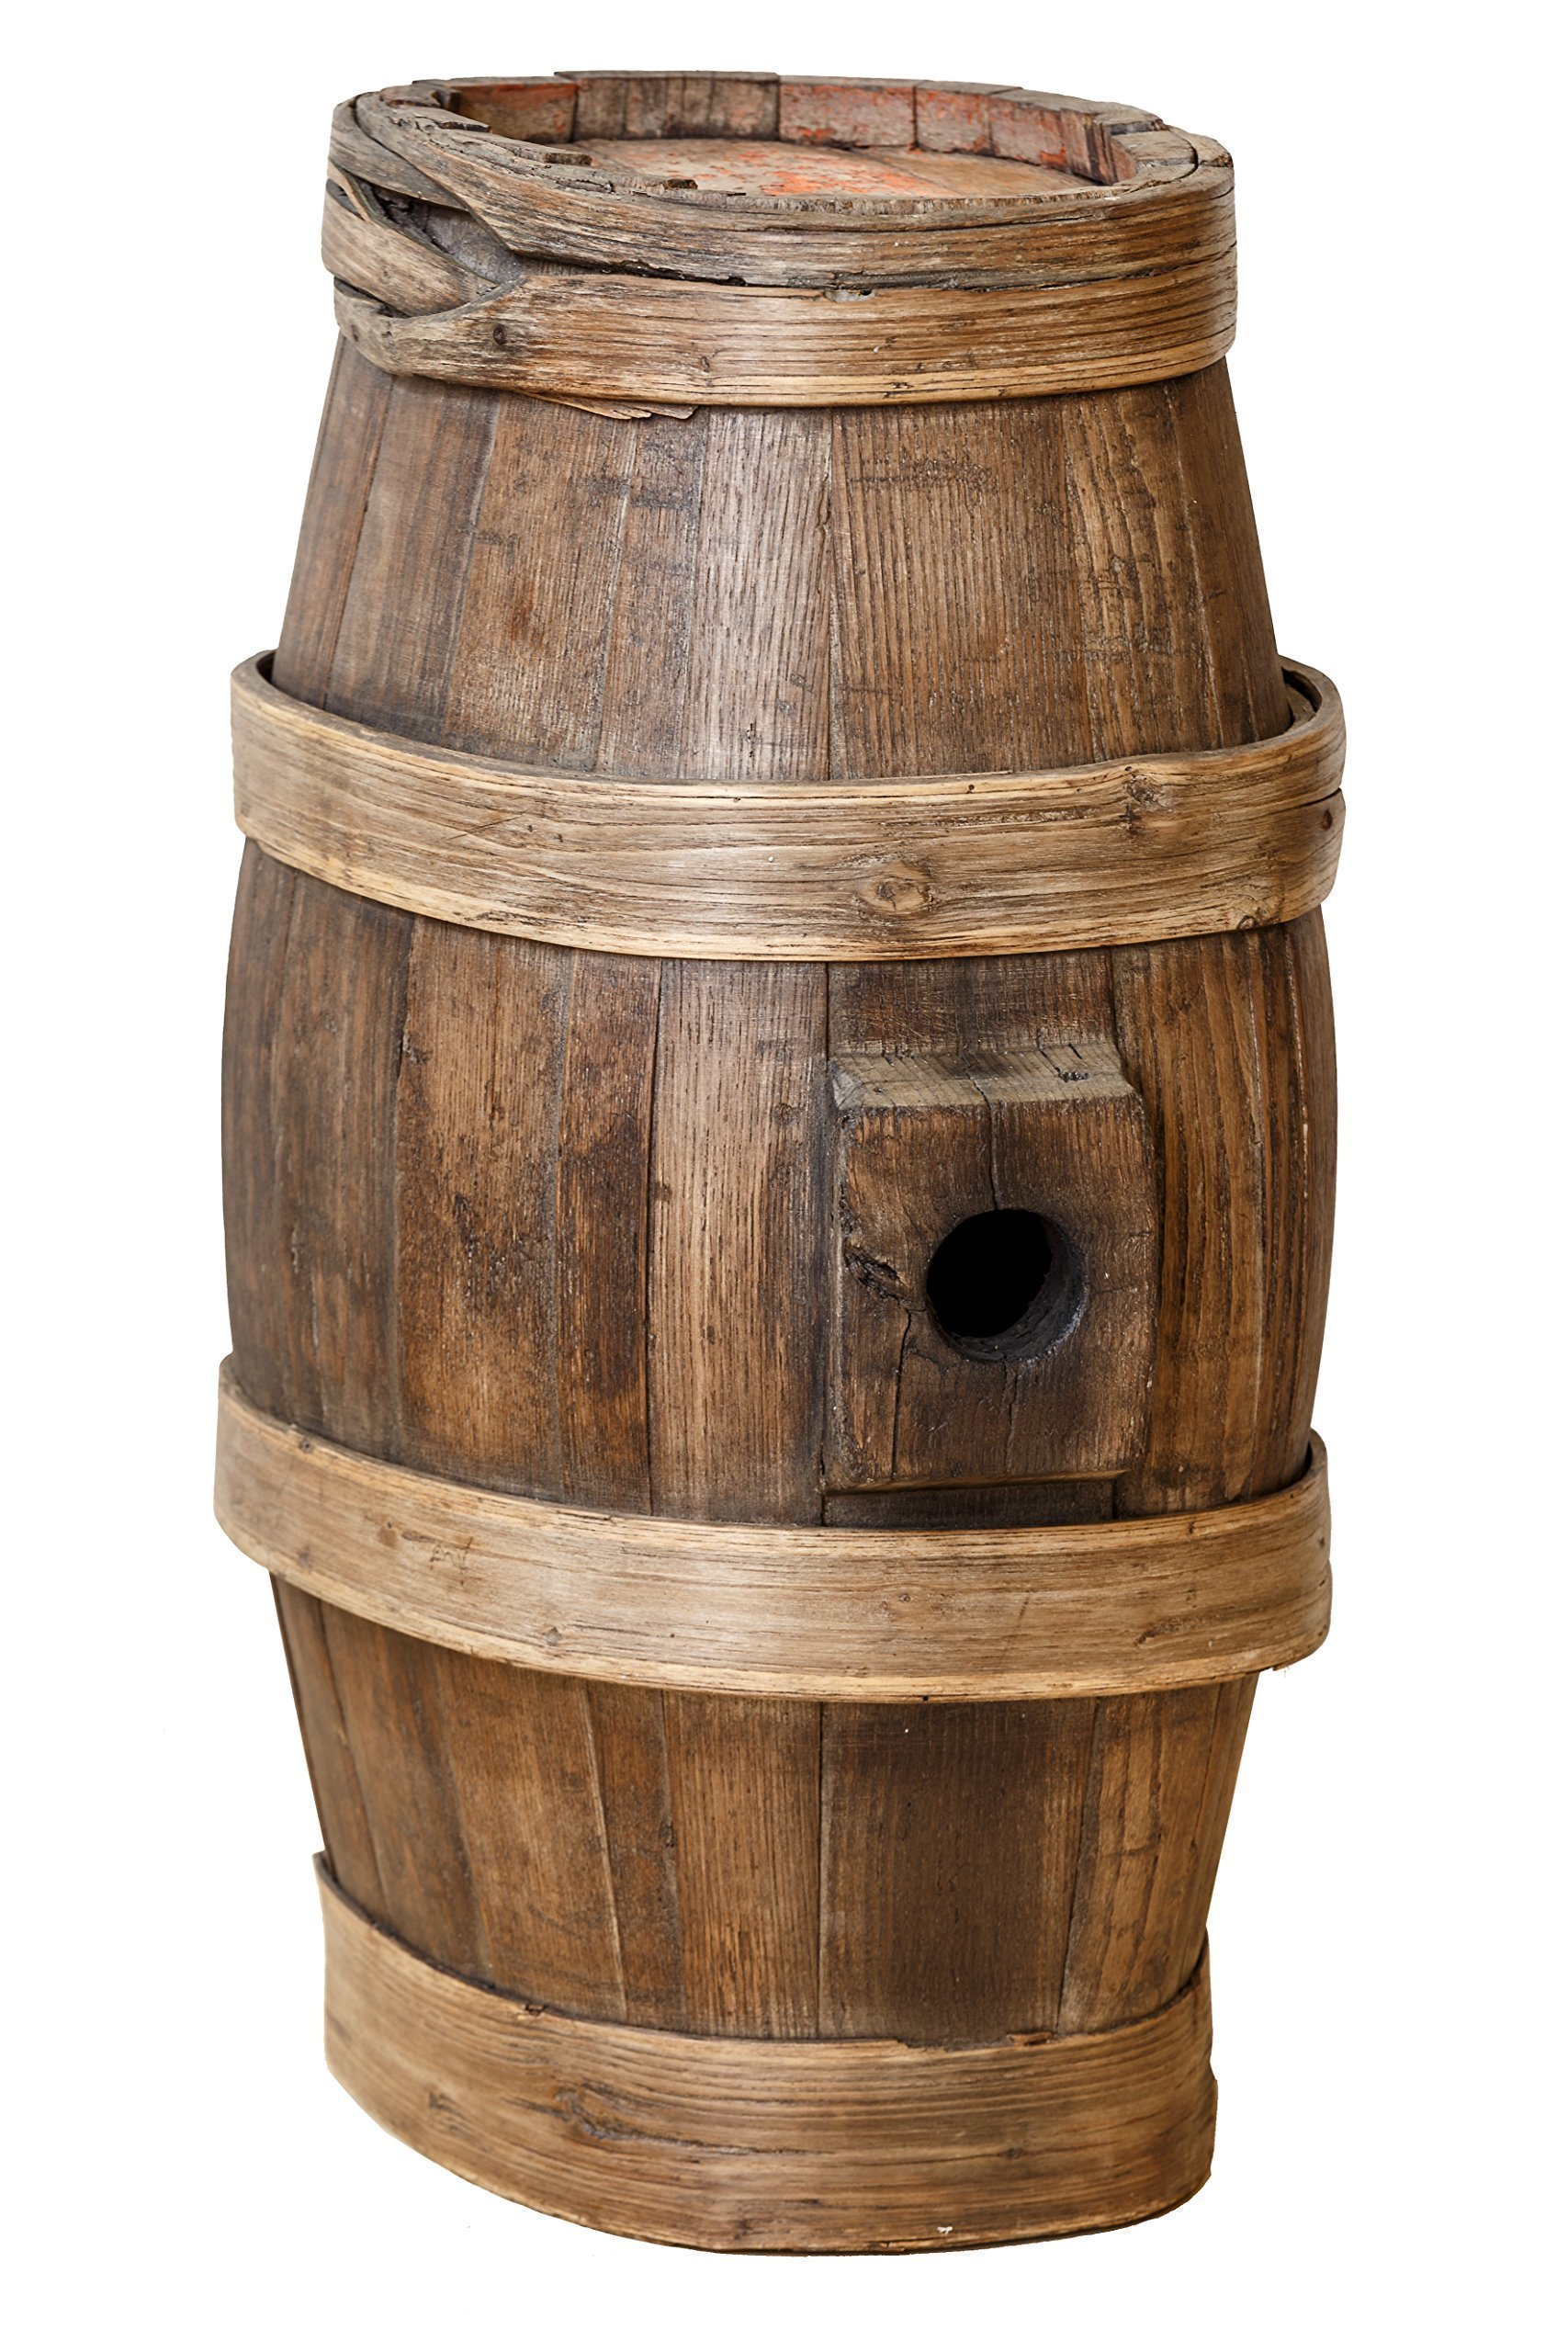 Le Porte del Chianti - Barrel Old Wine Container Can Be Used as a Base for a Table or Lamp Stand etc.